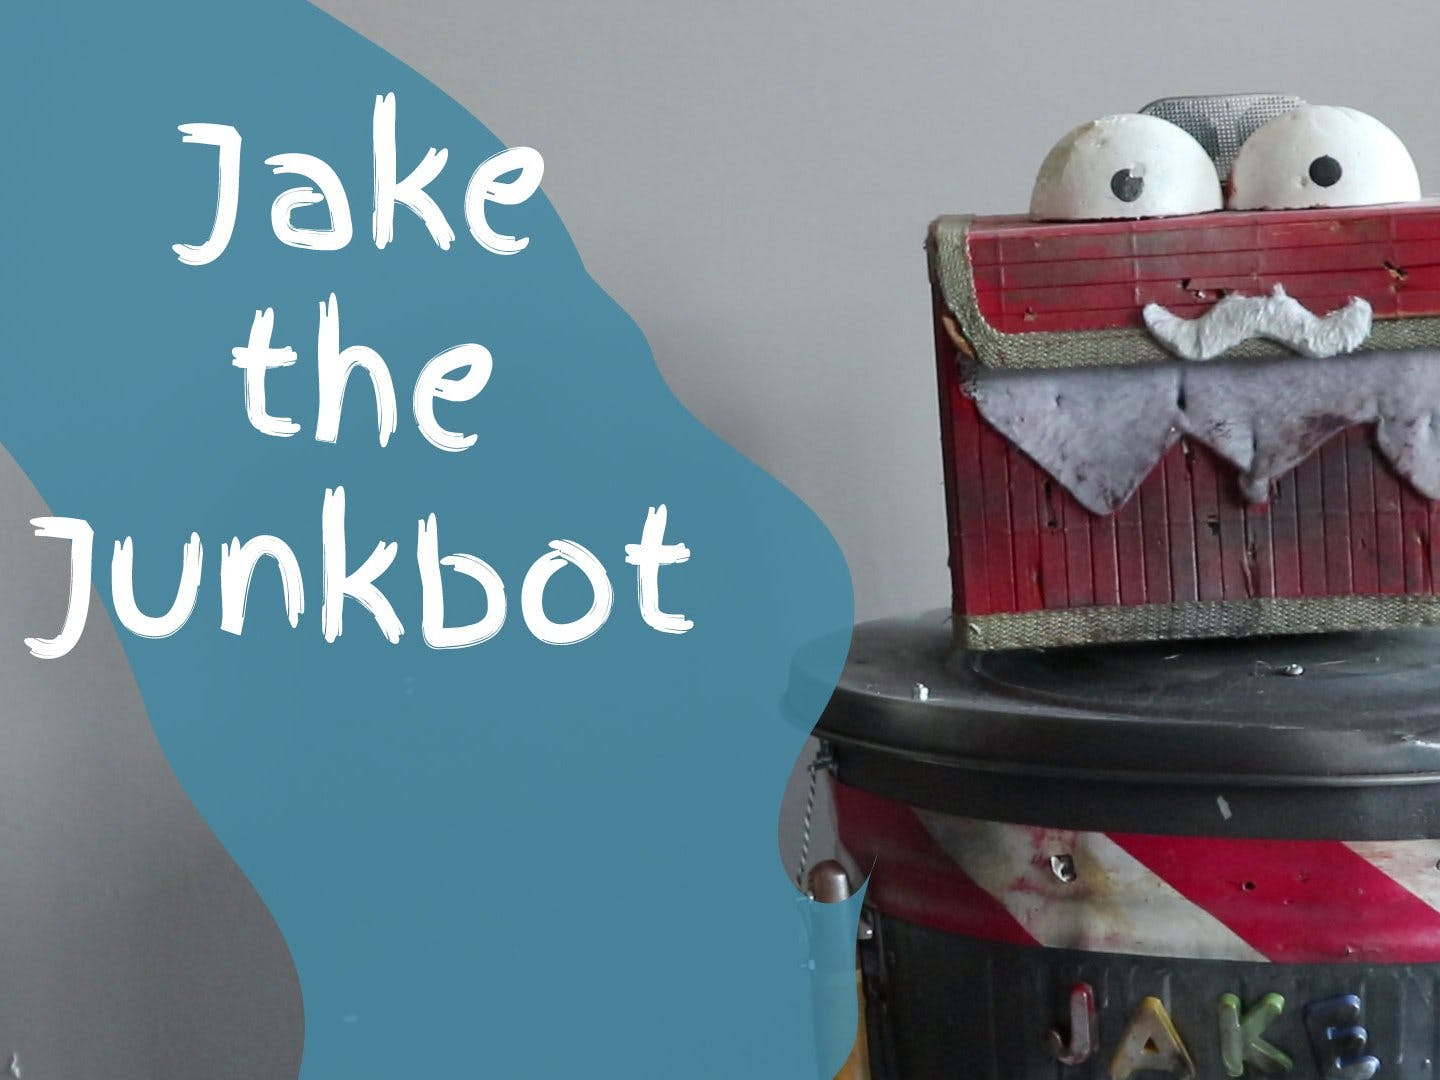 Jake the Junkbot